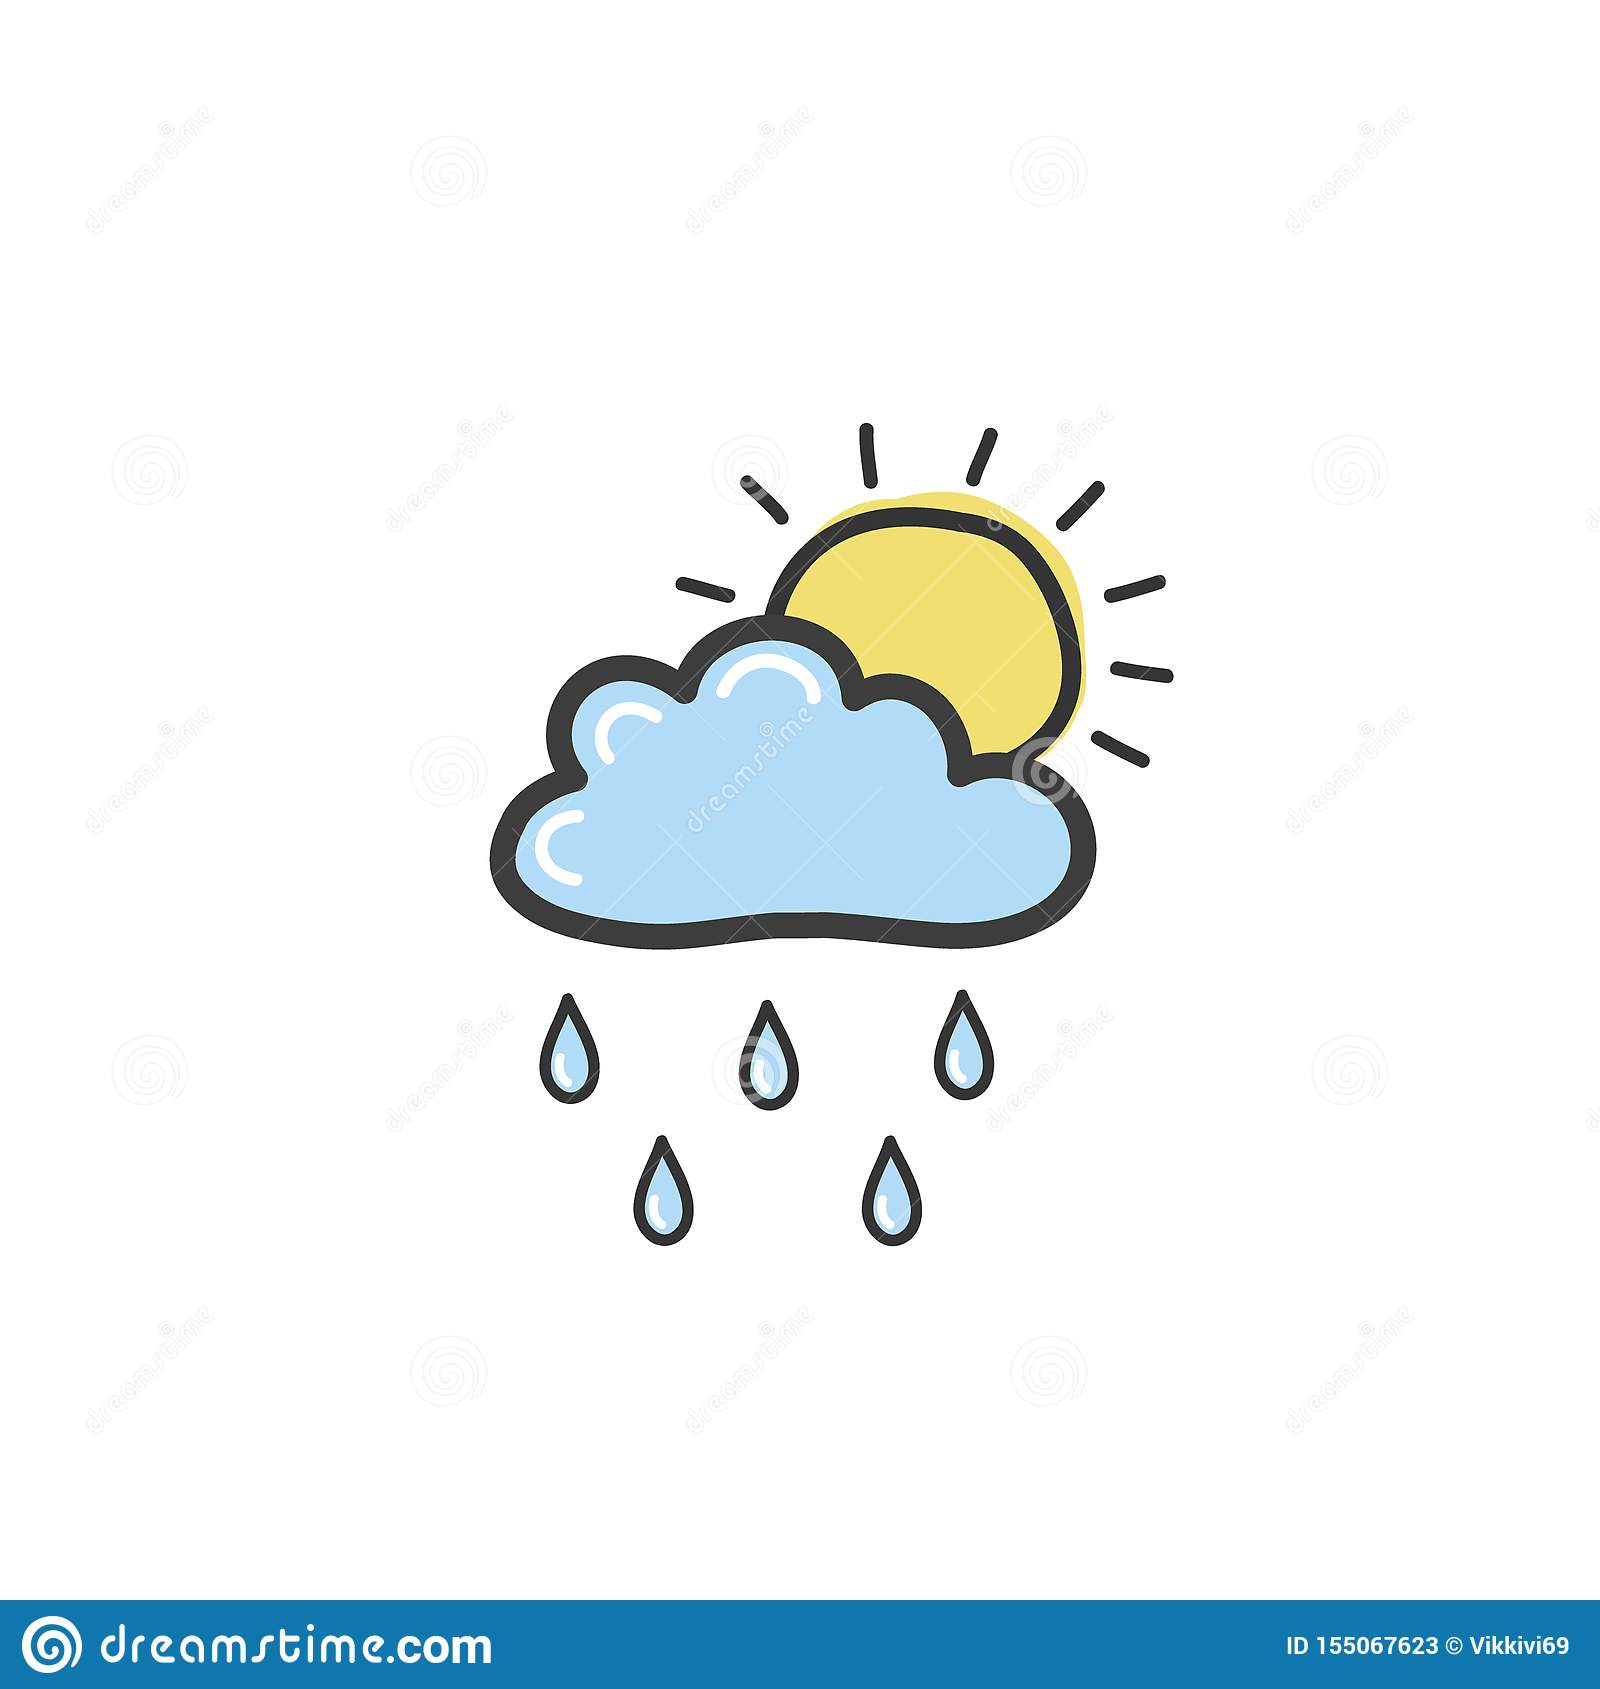 Drawing blue clouds with rain and sun. Symbol of weather. Vector hand drawn illustration in the doodle style